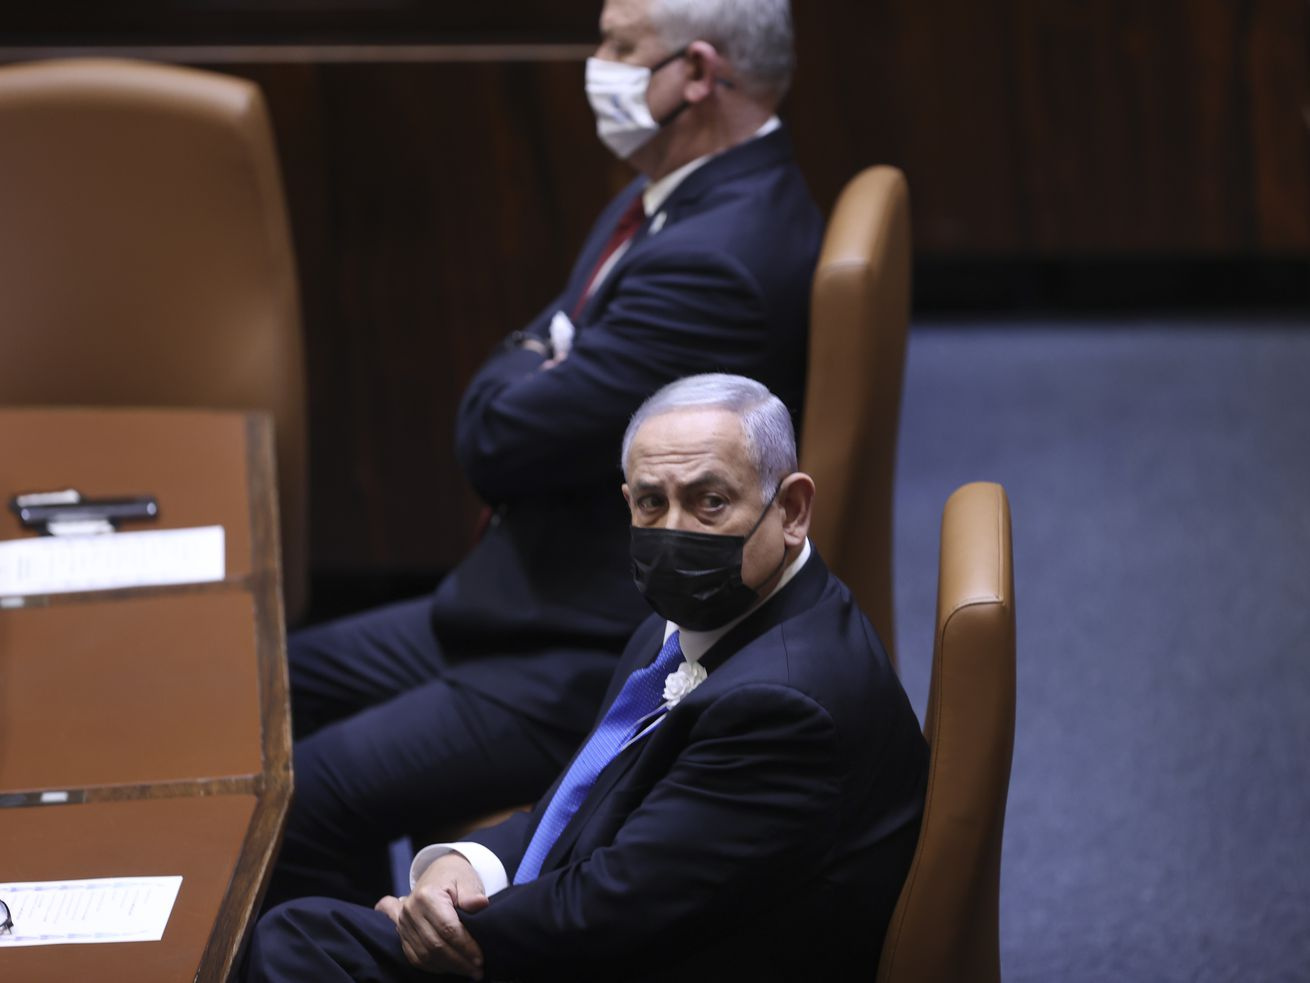 Israeli Prime Minister Benjamin Netanyahu, front, attends the swearing-in ceremony for Israel's 24th government, at the Knesset, or parliament, in Jerusalem, Tuesday, April 6, 2021. The ceremony took place shortly after the country's president asked Netanyahu to form a new majority coalition, a difficult task given the deep divisions in the fragmented parliament.